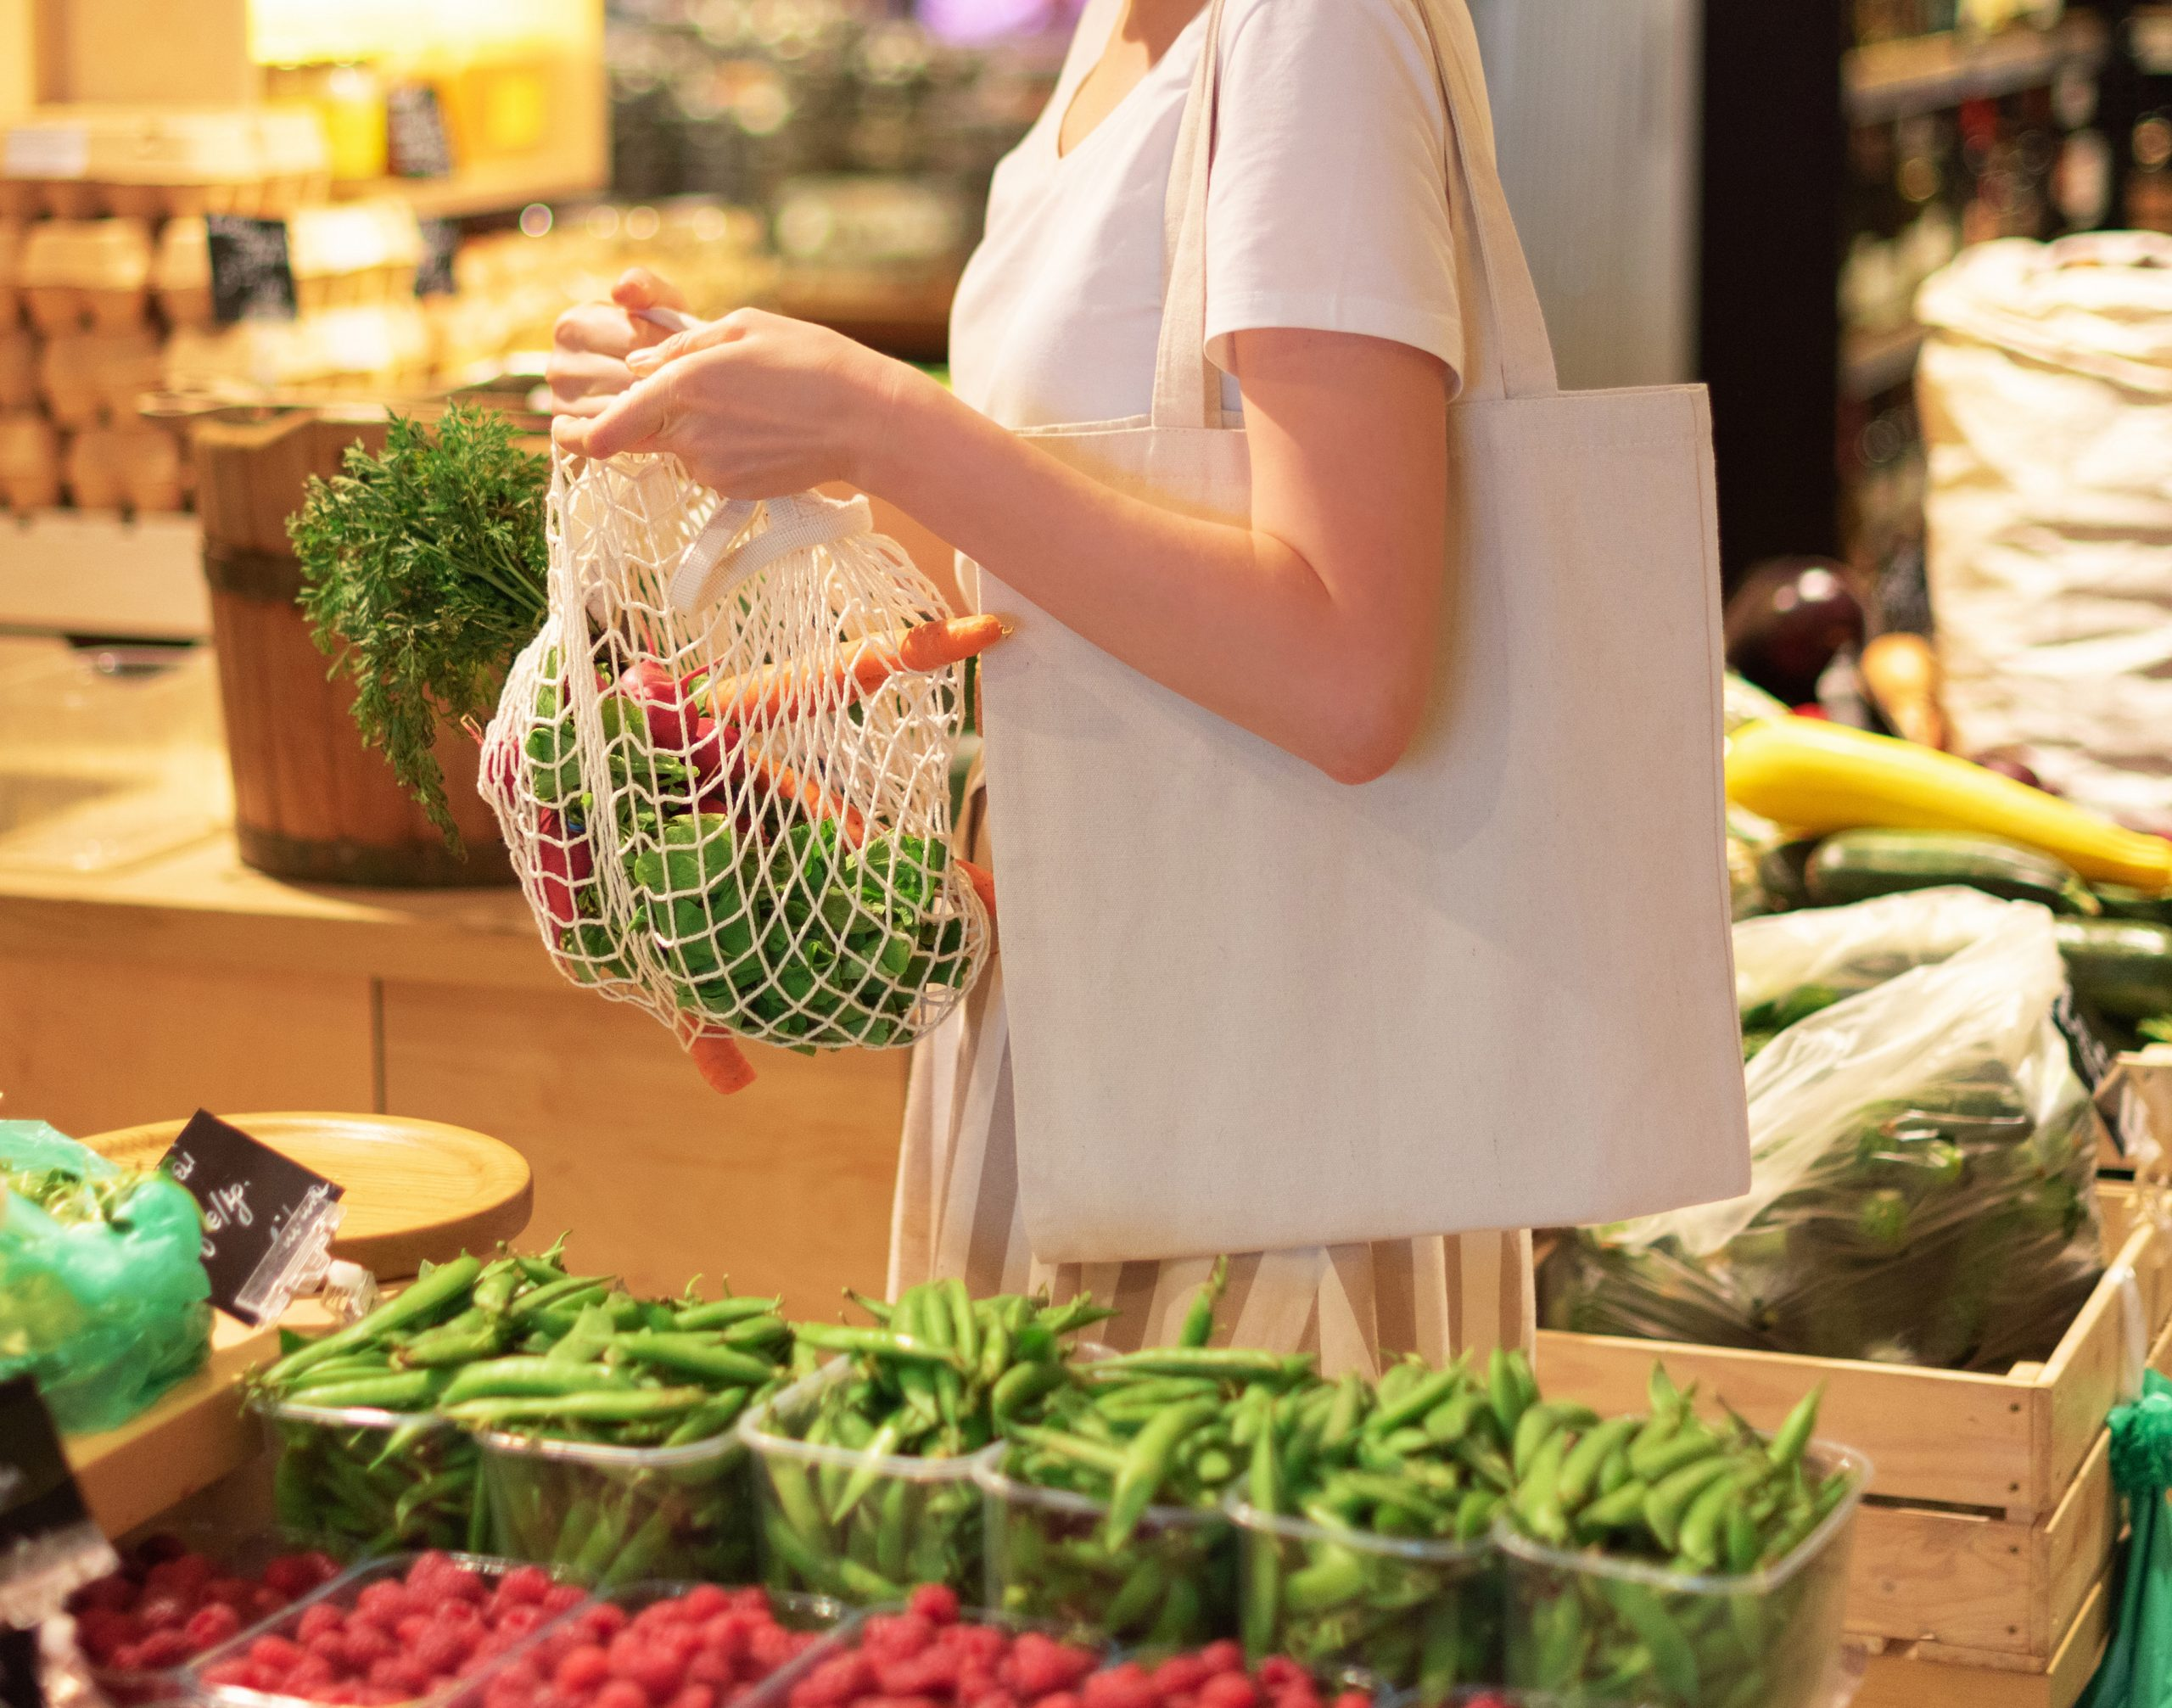 Woman chooses fruits and vegetables at farmers market. Zero waste, plastic free concept. Sustainable lifestyle. Reusable cotton and mesh eco bags for shopping.